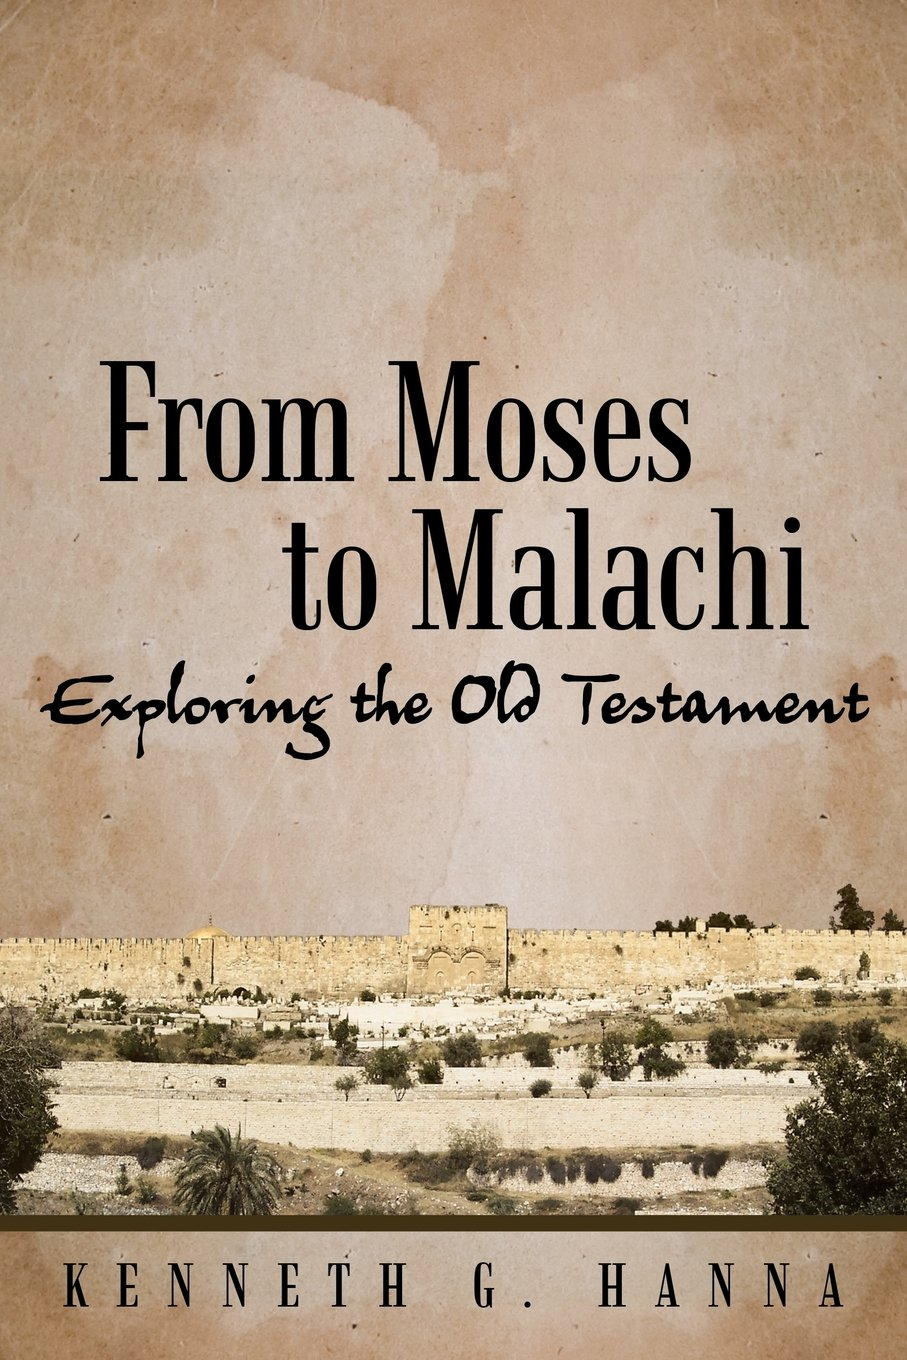 From Moses to Malachi: Exploring the Old Testament PDF